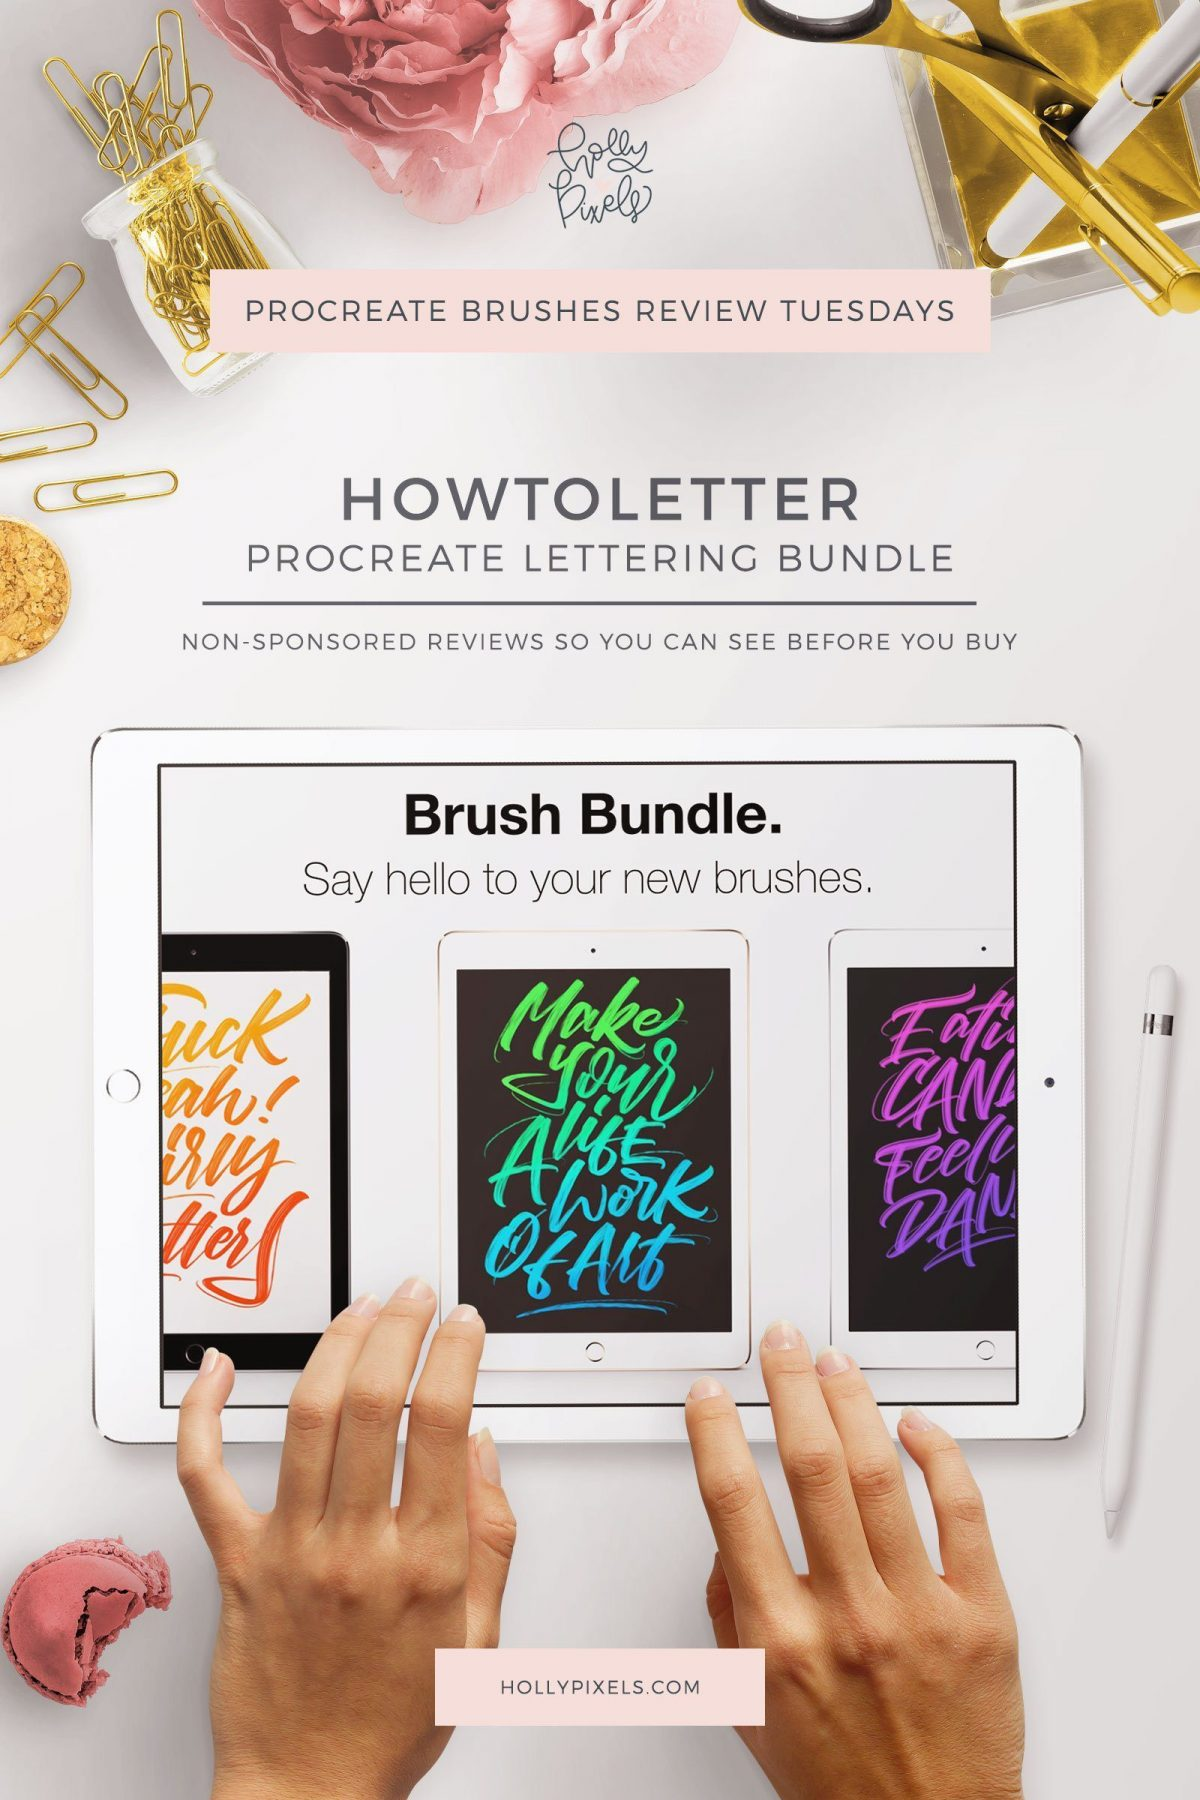 With this week's Procreate Brush Review I'm tackling these fun sign painter style brushes by HowtoLetter that can be purchased at Creative Market.